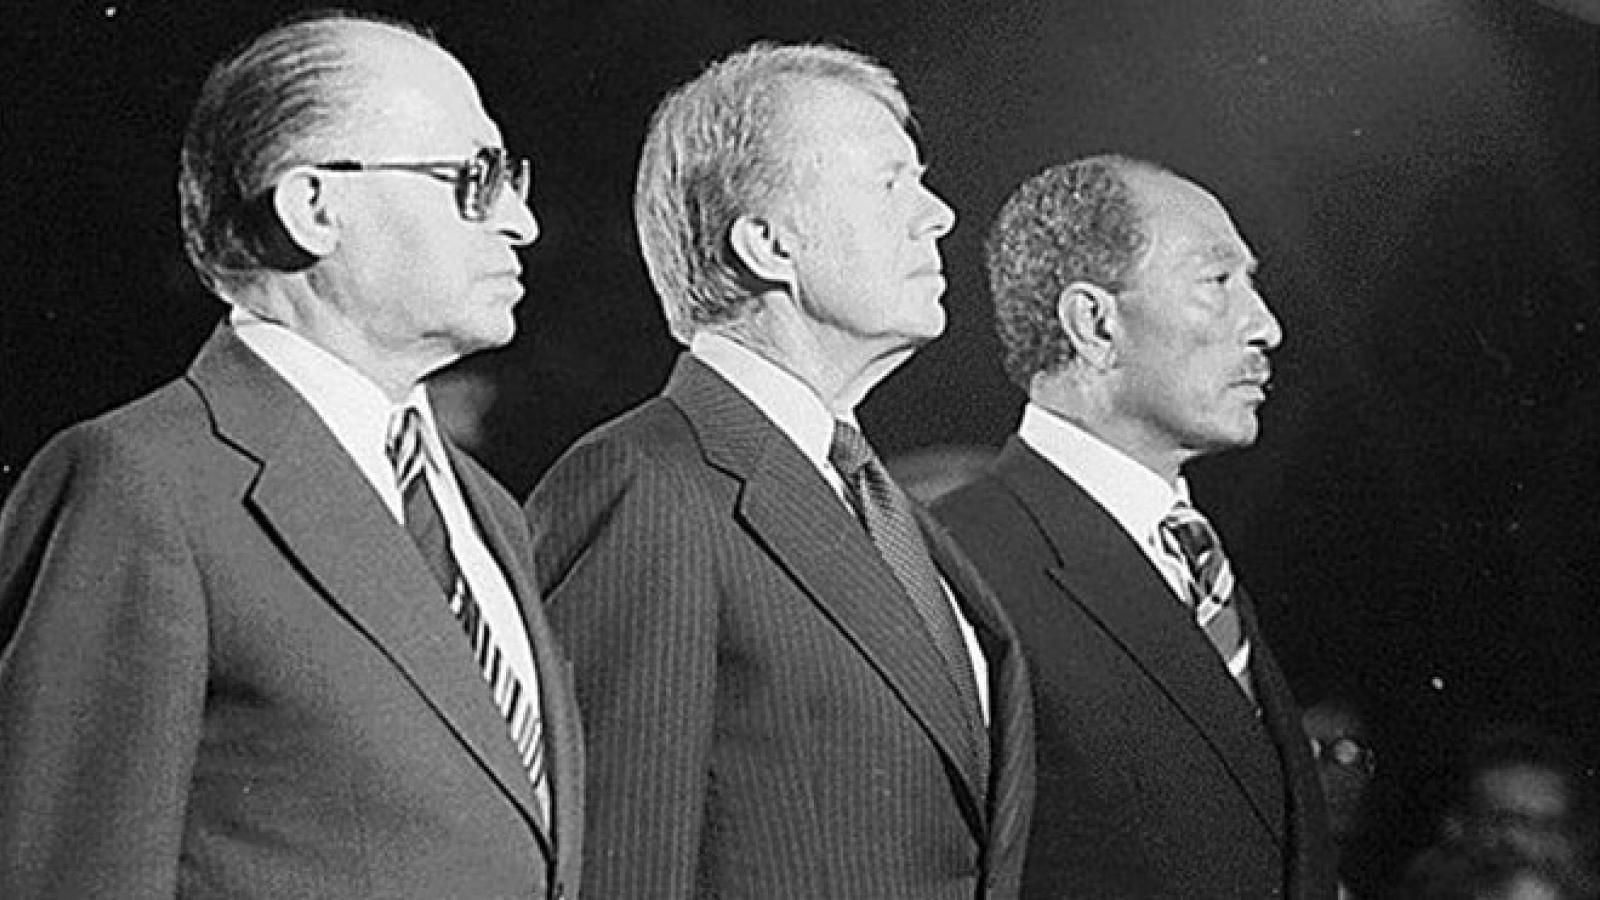 Begin, Carter, and Sadat